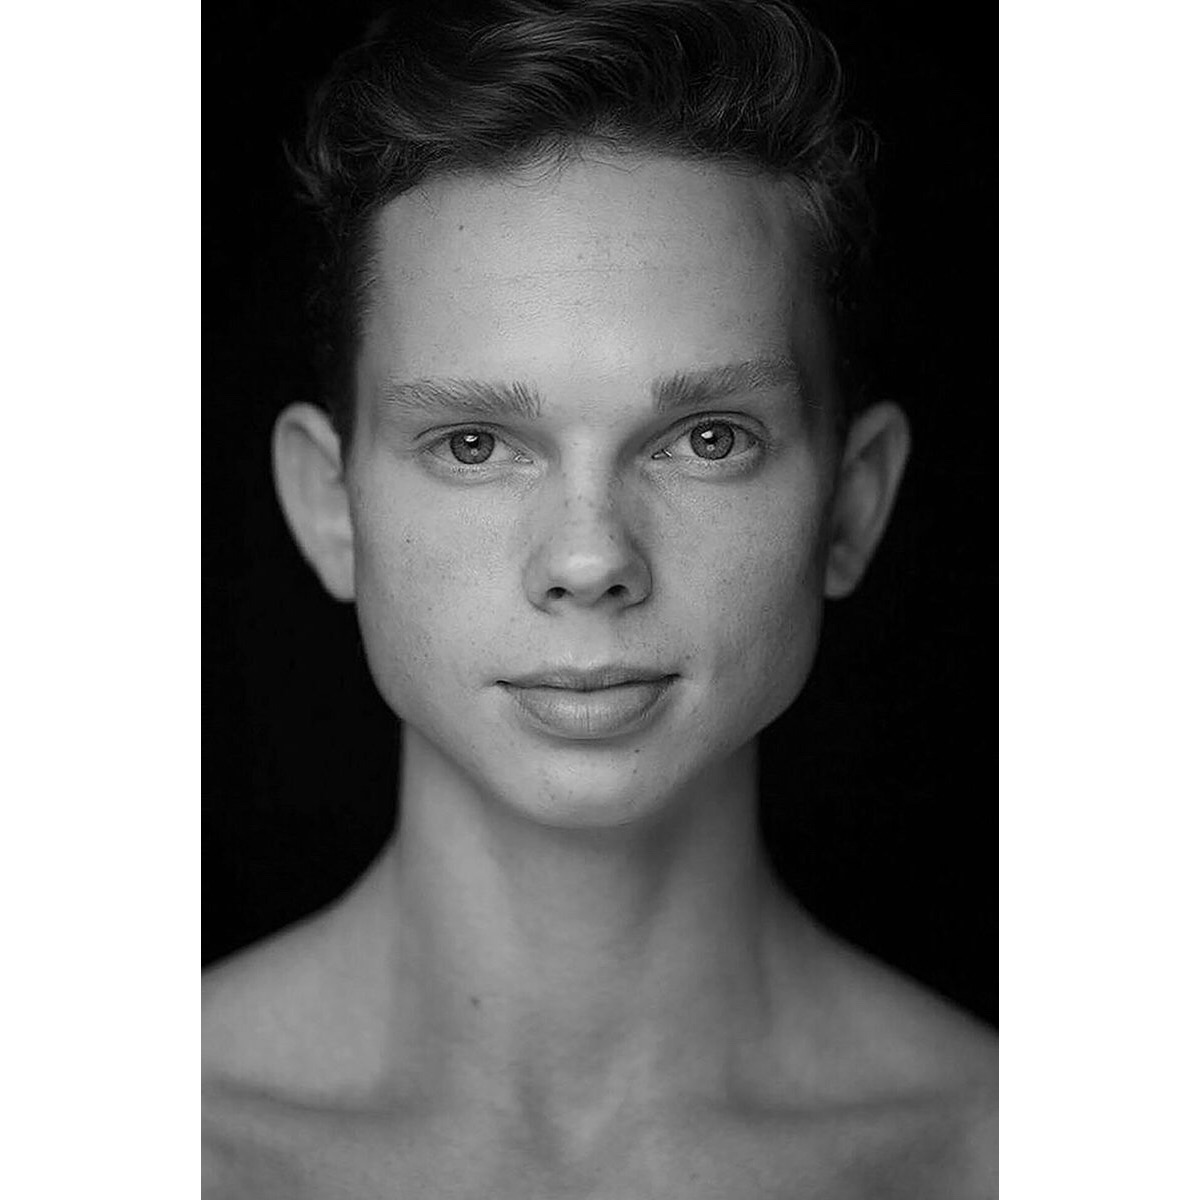 connor holloway, american ballet theatre, abt, conversations on dance podcast, ballet, professional dancer, ABT, abt official, Louisville Kentucky, Kentucky, kennedy center, dance podcast, ballet podcast, podcasters, miami city ballet